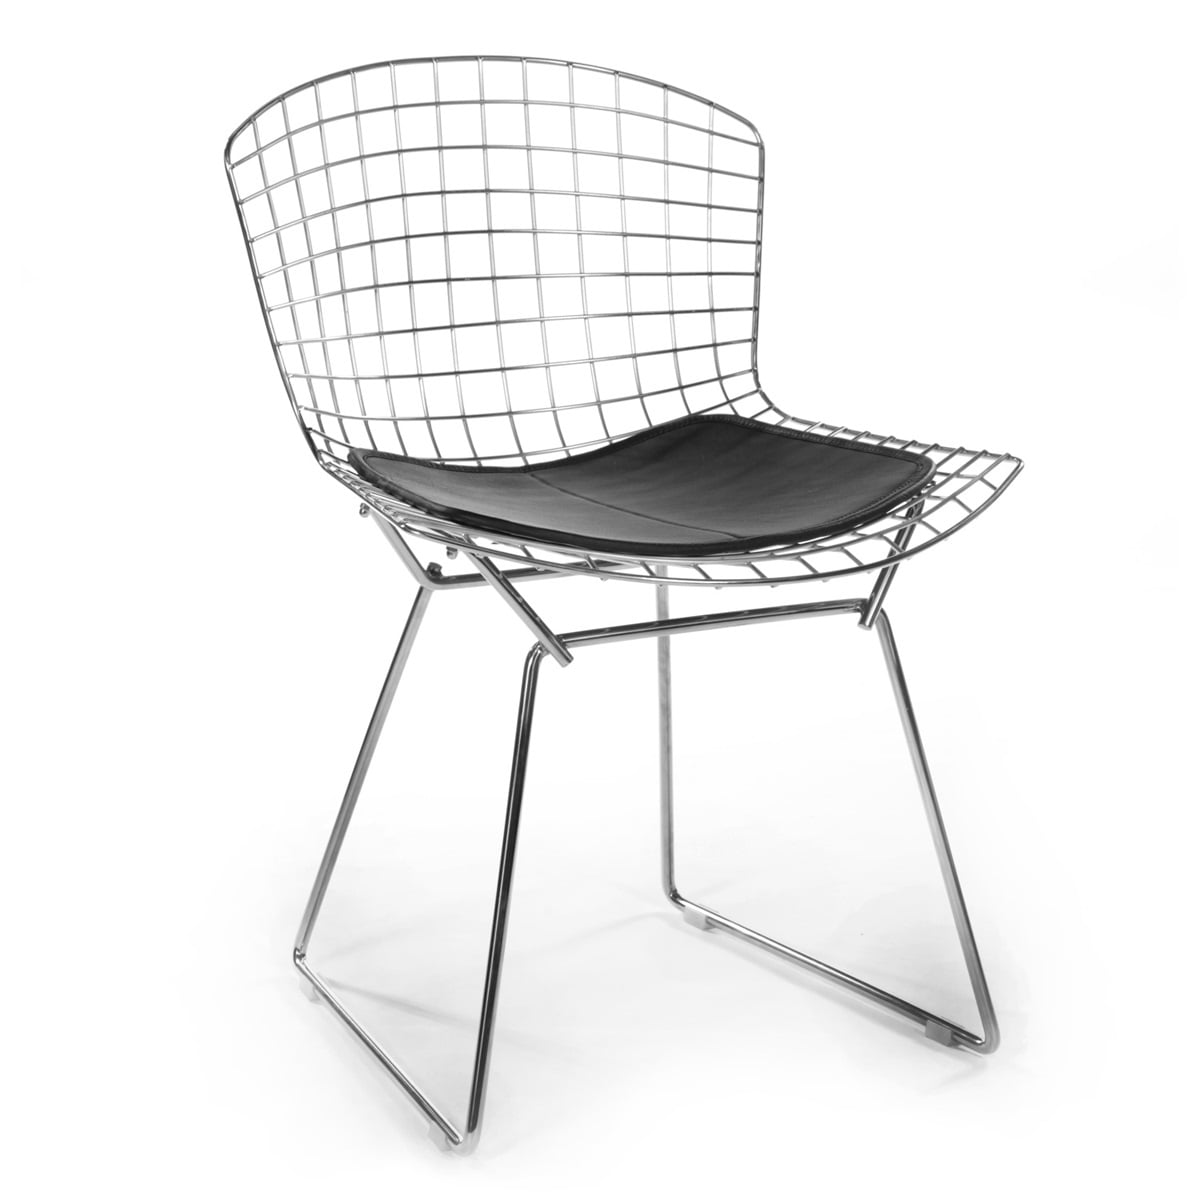 bertoia wire chair original kohls lounge chairs dining homage